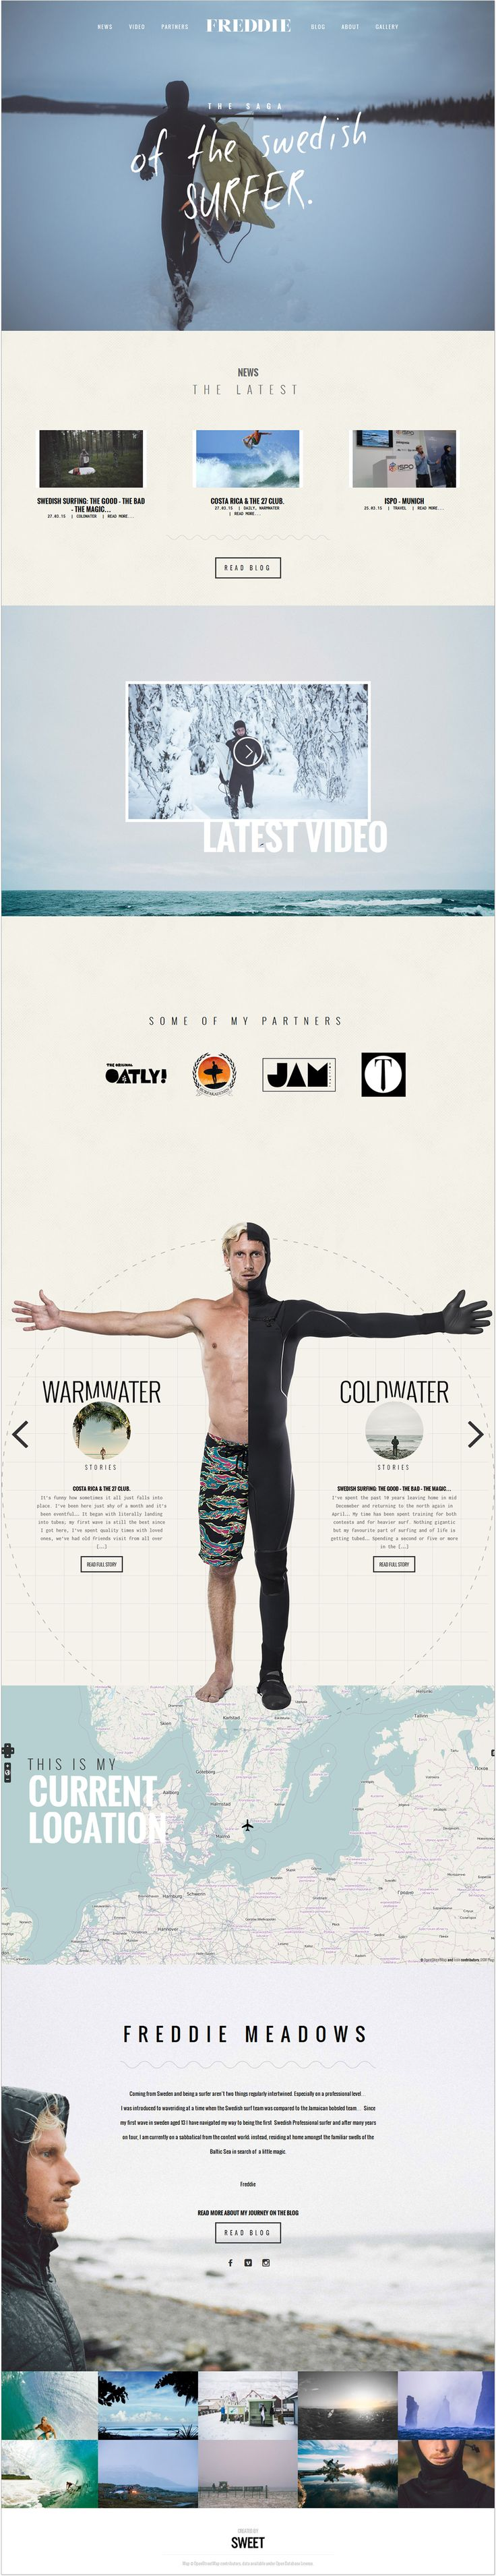 Freddie Meadows. The saga of the Swedish surfer. #webdesign #design (View more at www.aldenchong.com)